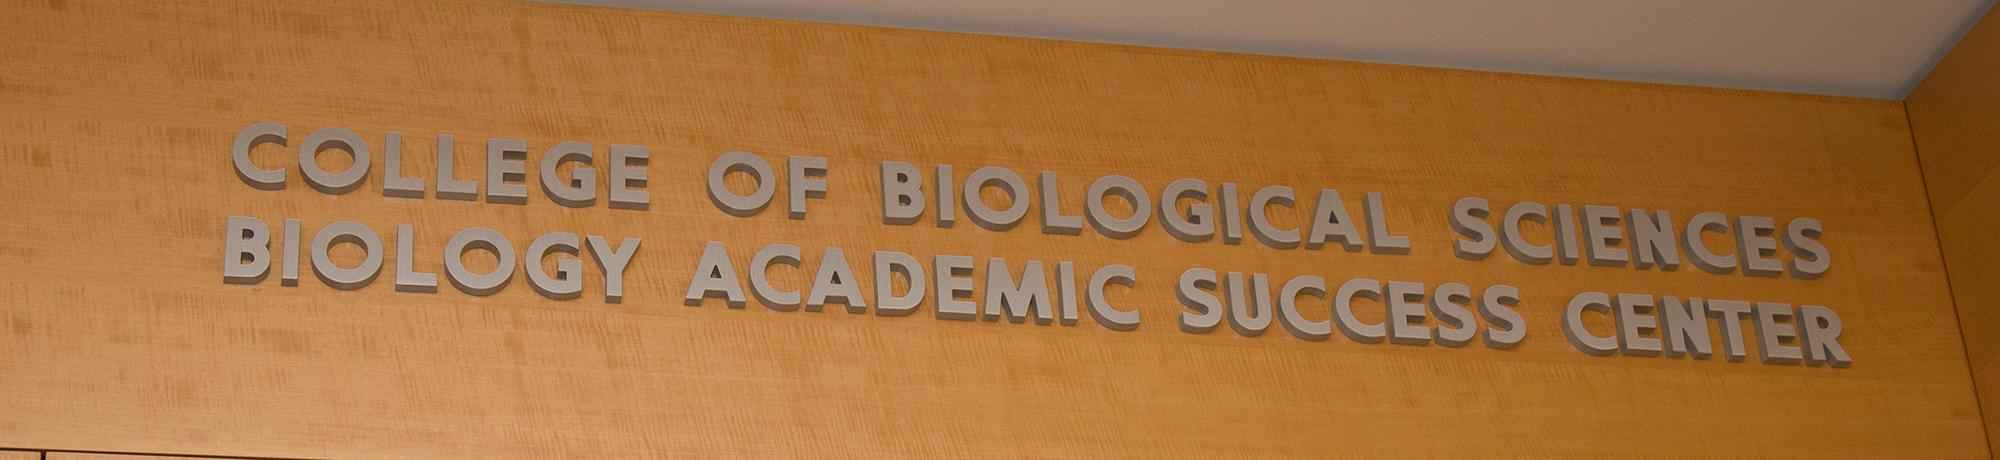 Biology Academic Success Center Sign